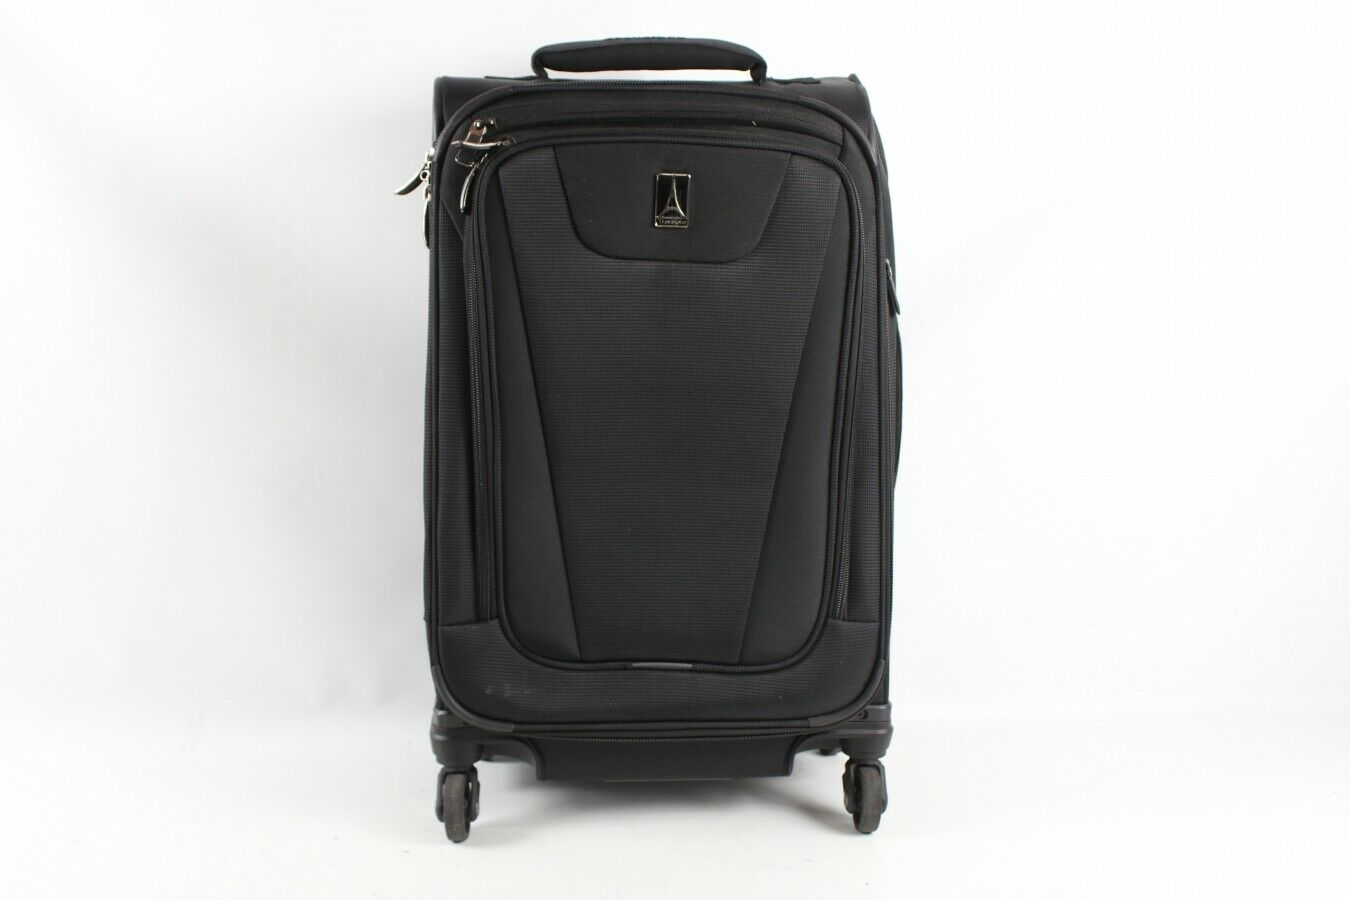 travelpro-maxlite-4-expandable-21-inch-spinner-suitcase-b-401156101-preowned